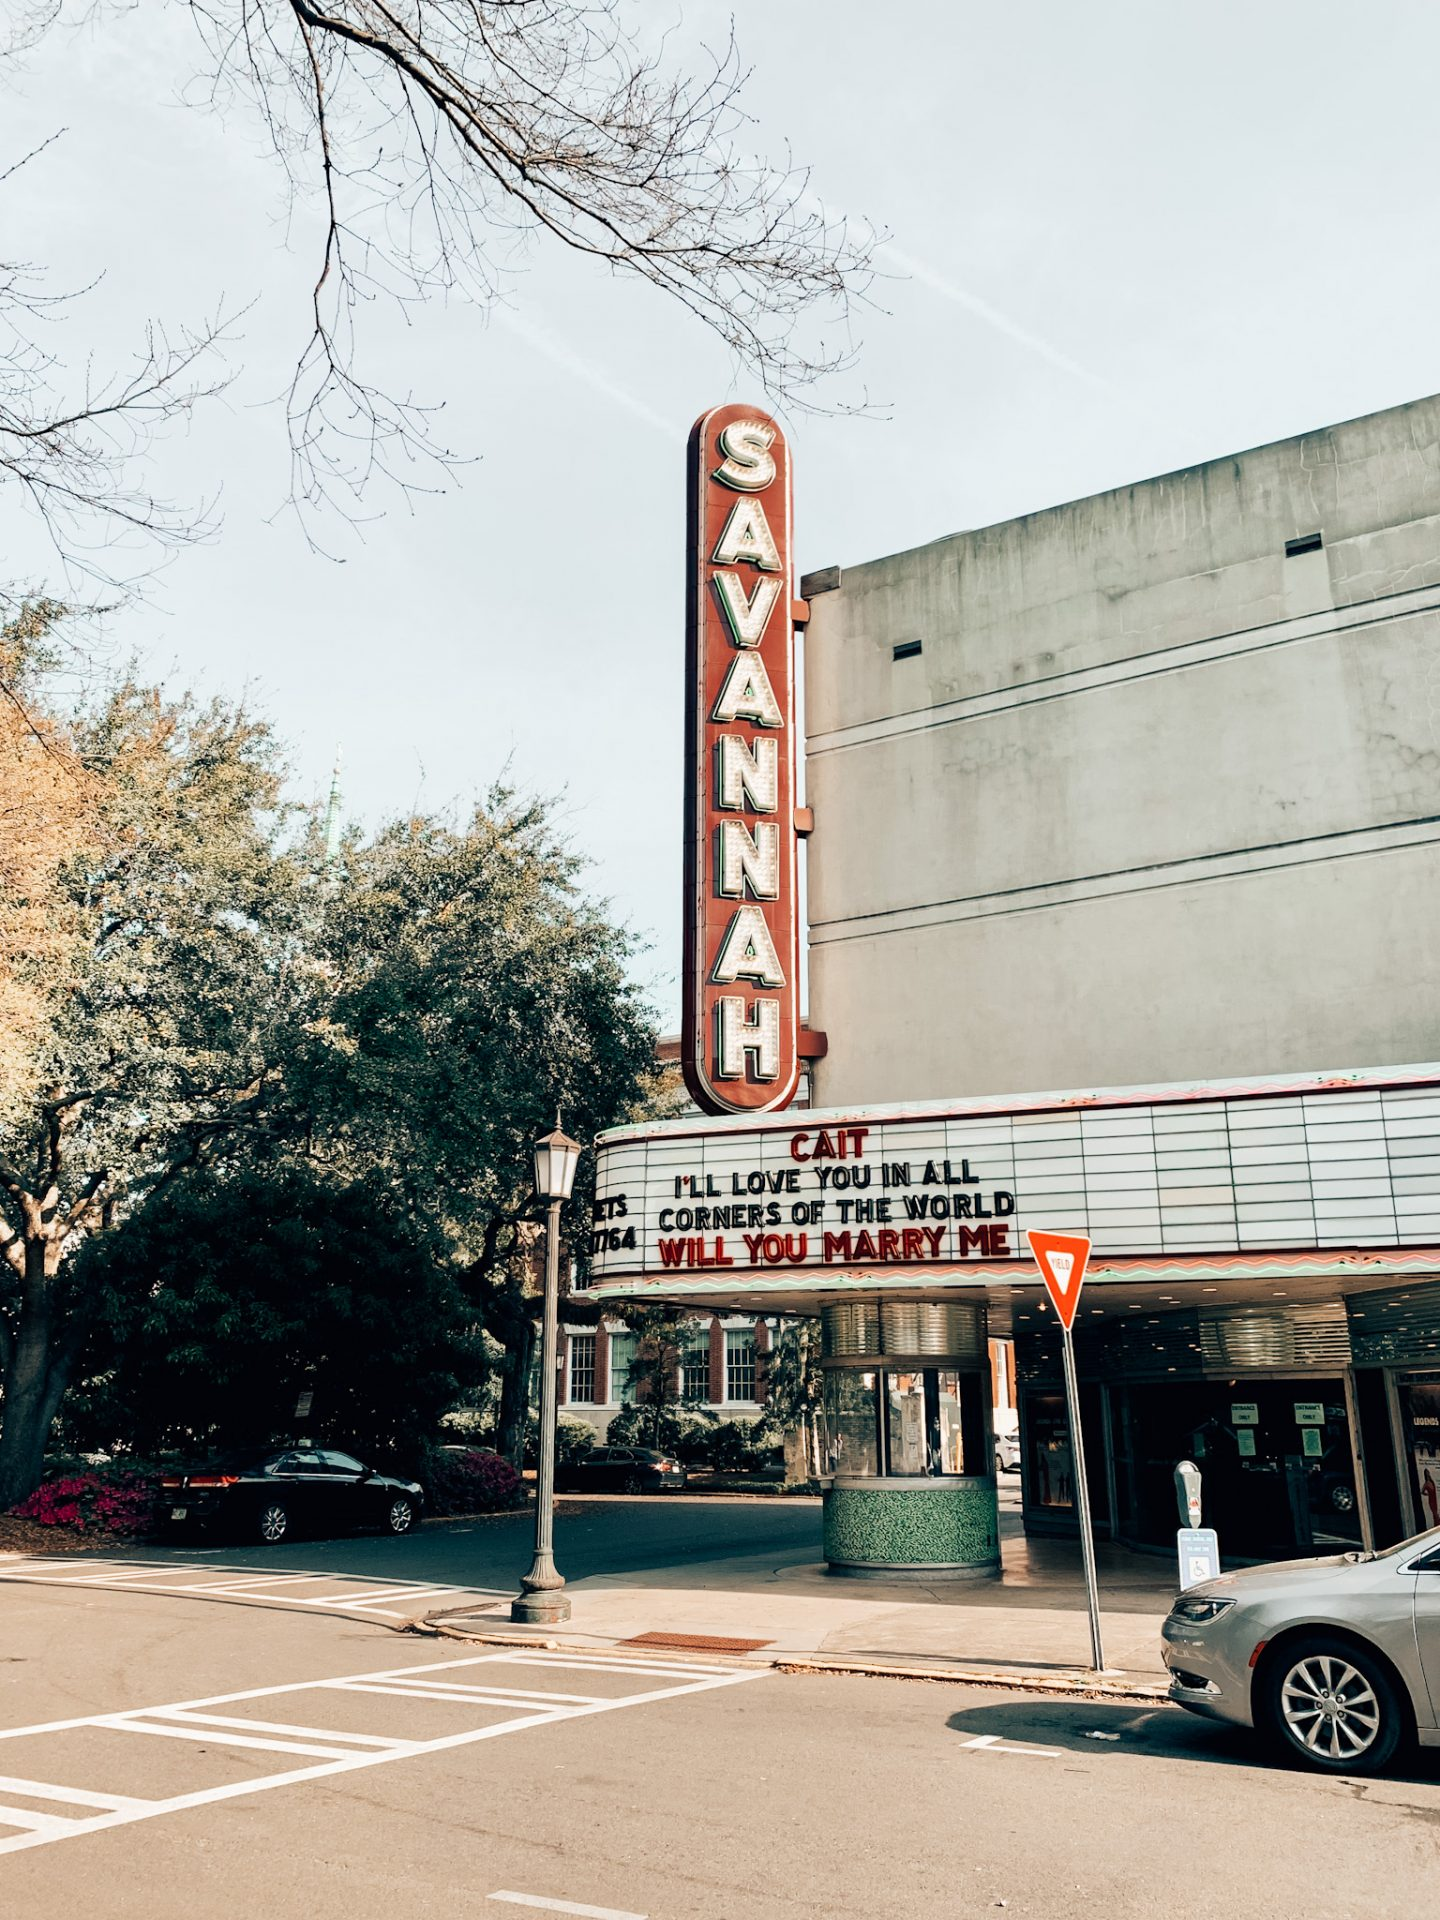 The historic Savannah theater